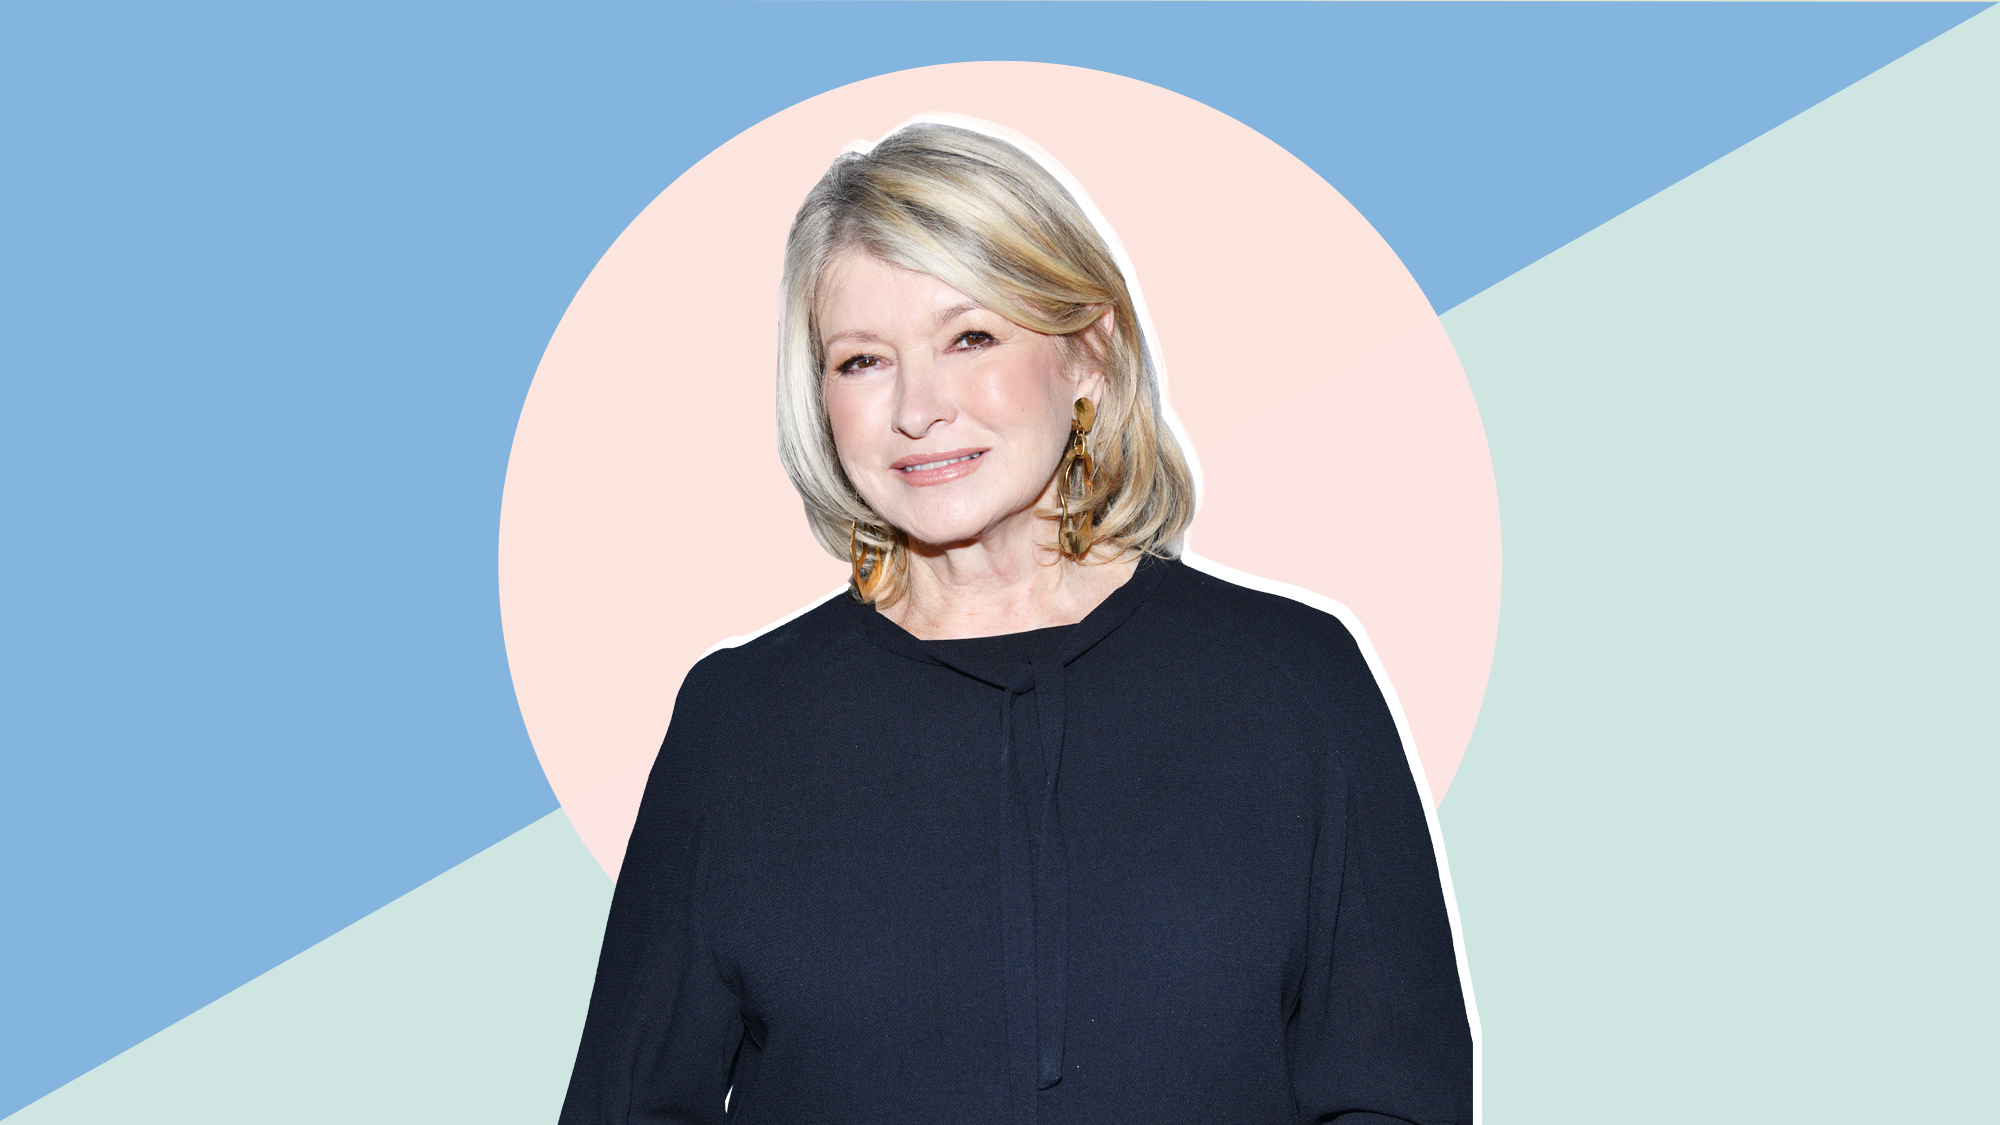 A portrait of Martha Stewart on a designed background